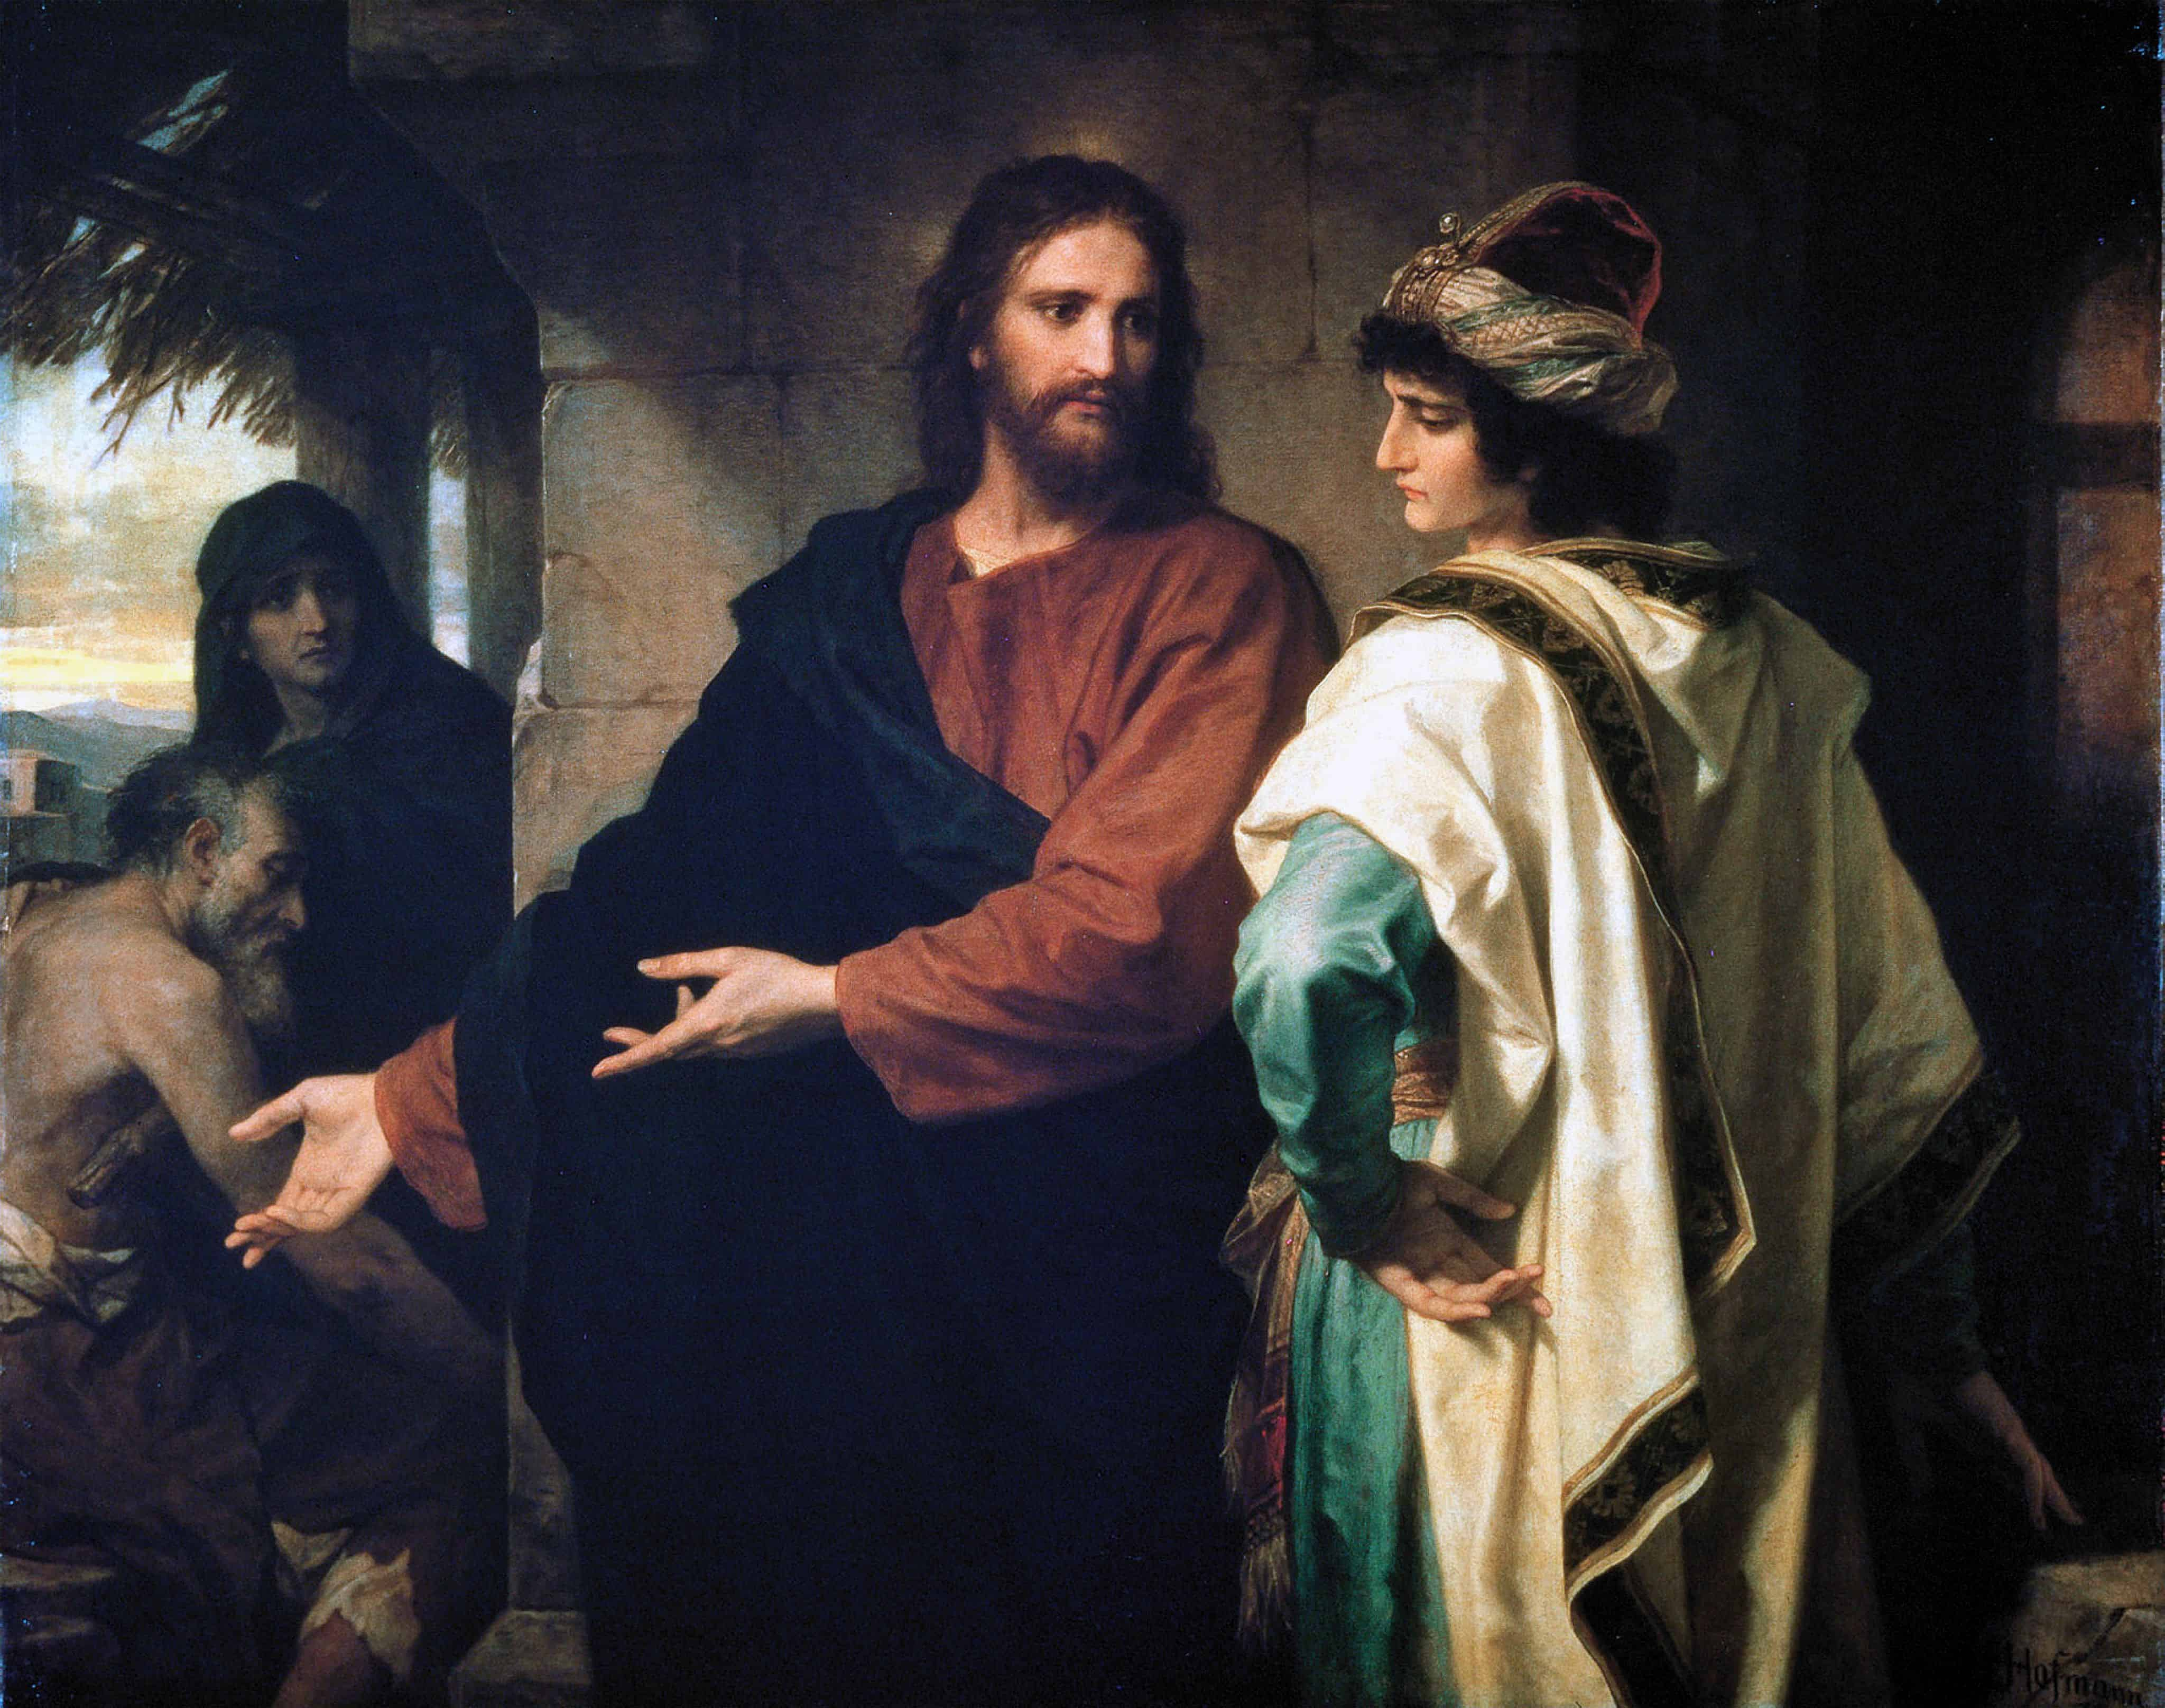 evangelical counsels, poverty, chastity, obedience